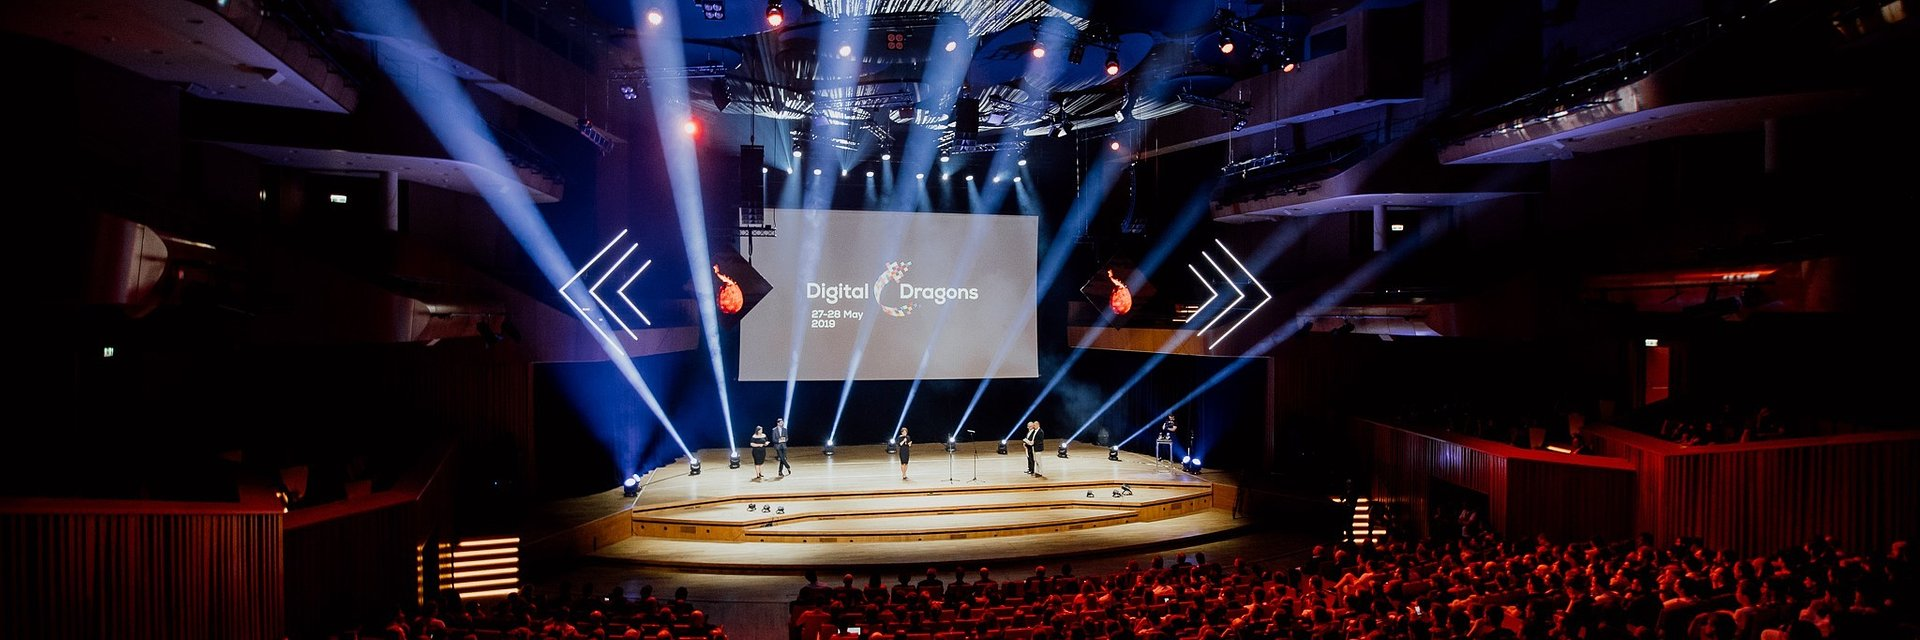 First Digital Dragons speakers announced